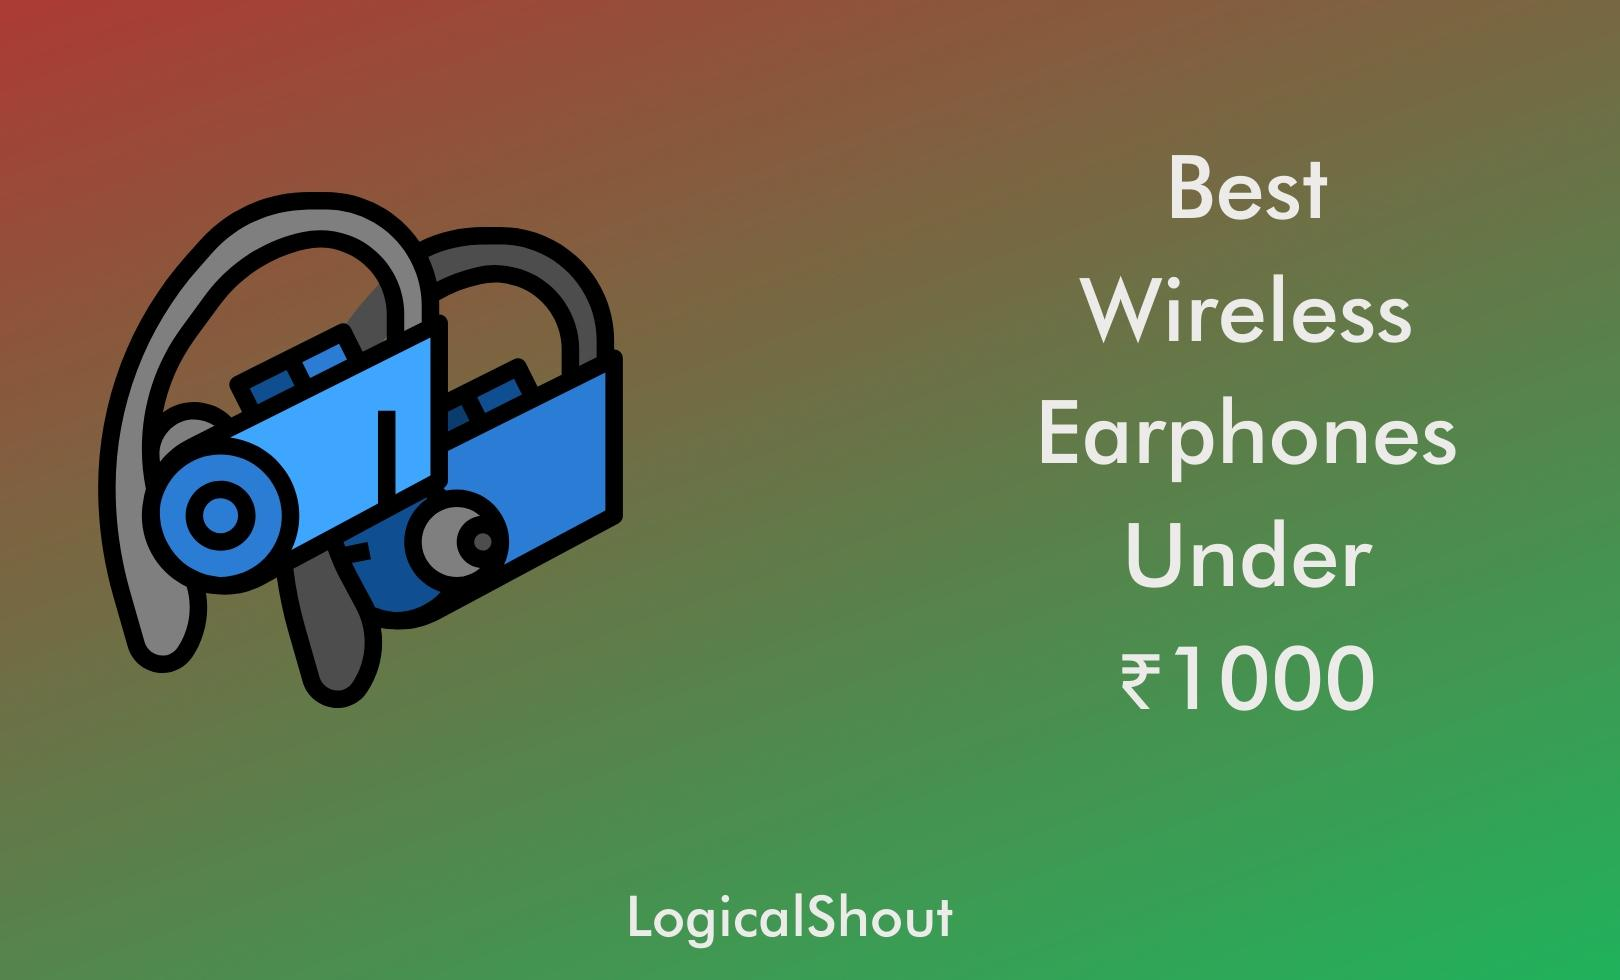 Best Wireless Earphones Under 1000